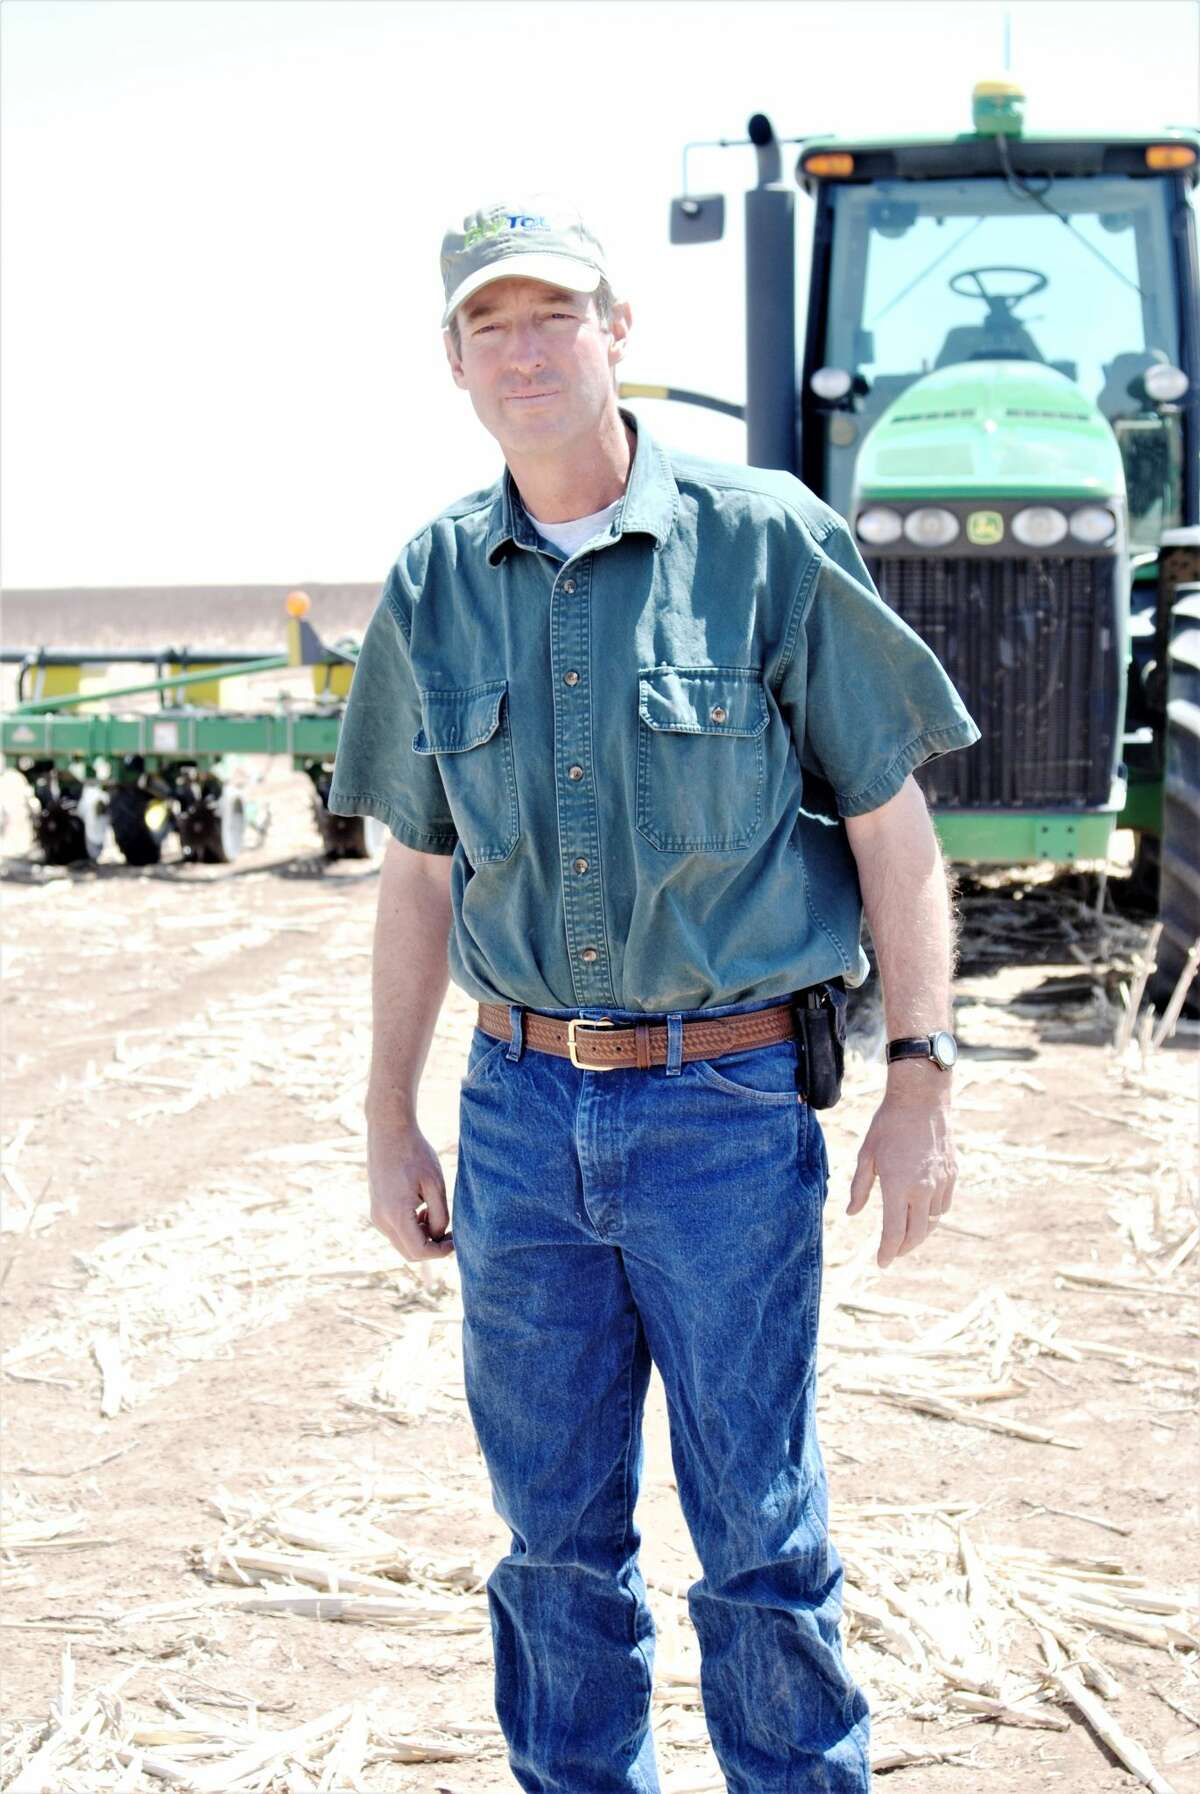 Barry Evans, whose farming is roughly 85 percent rain fed, will be a featured speaker at a Saving Our Aquifer field day upcoming June 30 at Kress, sponsored by Ogallala Commons, the High Plains Underground Water Conservation District, and the Dixon Water Foundation.